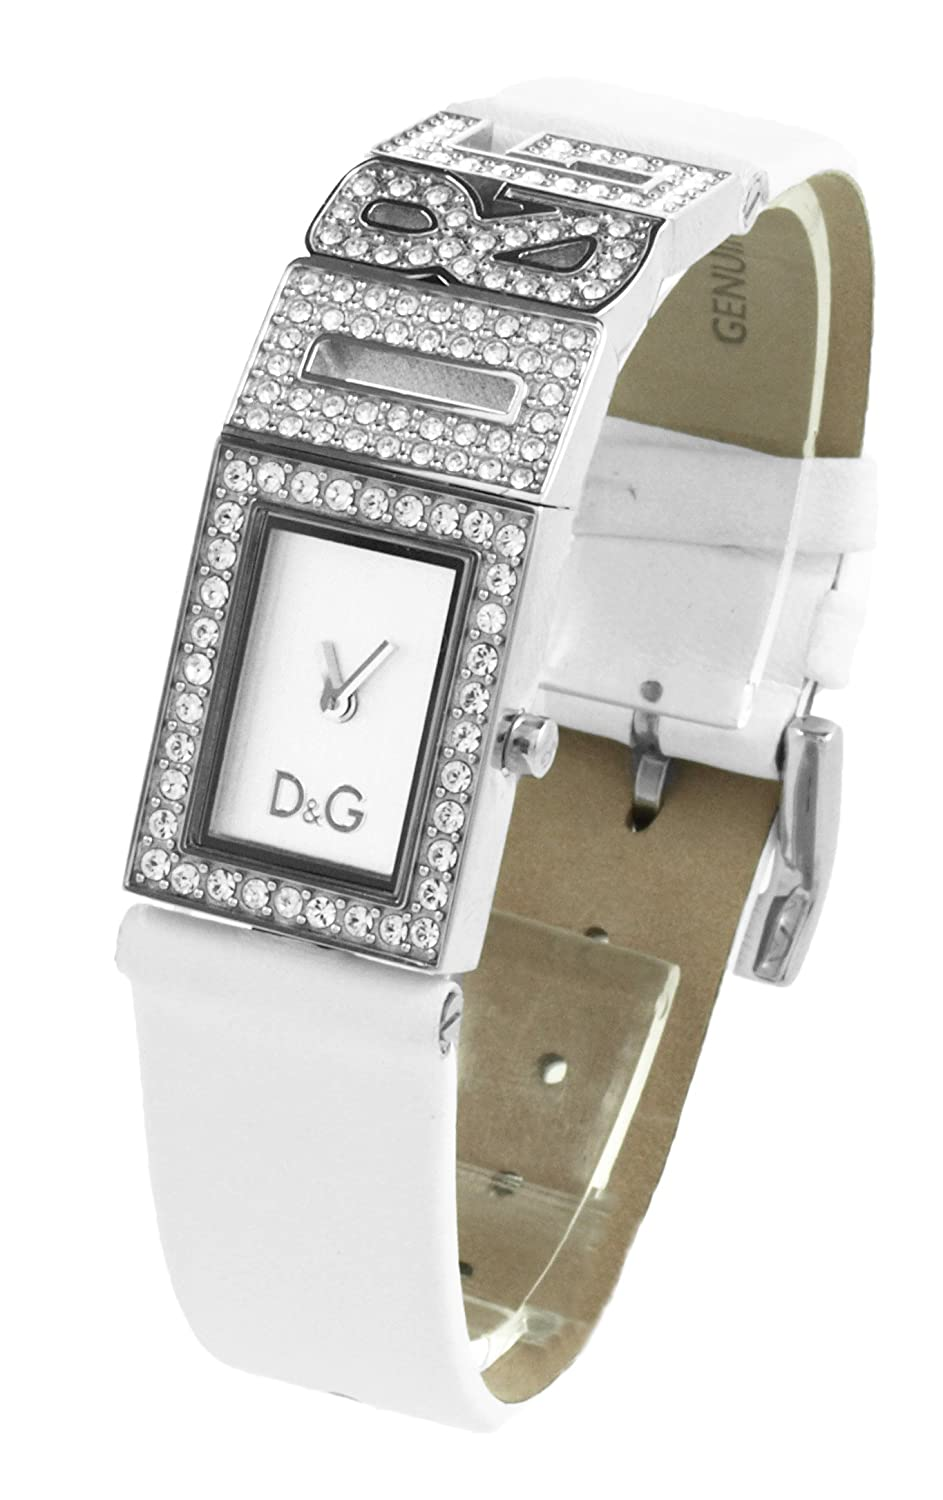 D&G Ladies Shout Quartz Watch DW0506 with Silver Analogue Dial, Stainless  Steel Case With Stones and White Leather Strap: Dolce & Gabbana:  Amazon.co.uk: ...